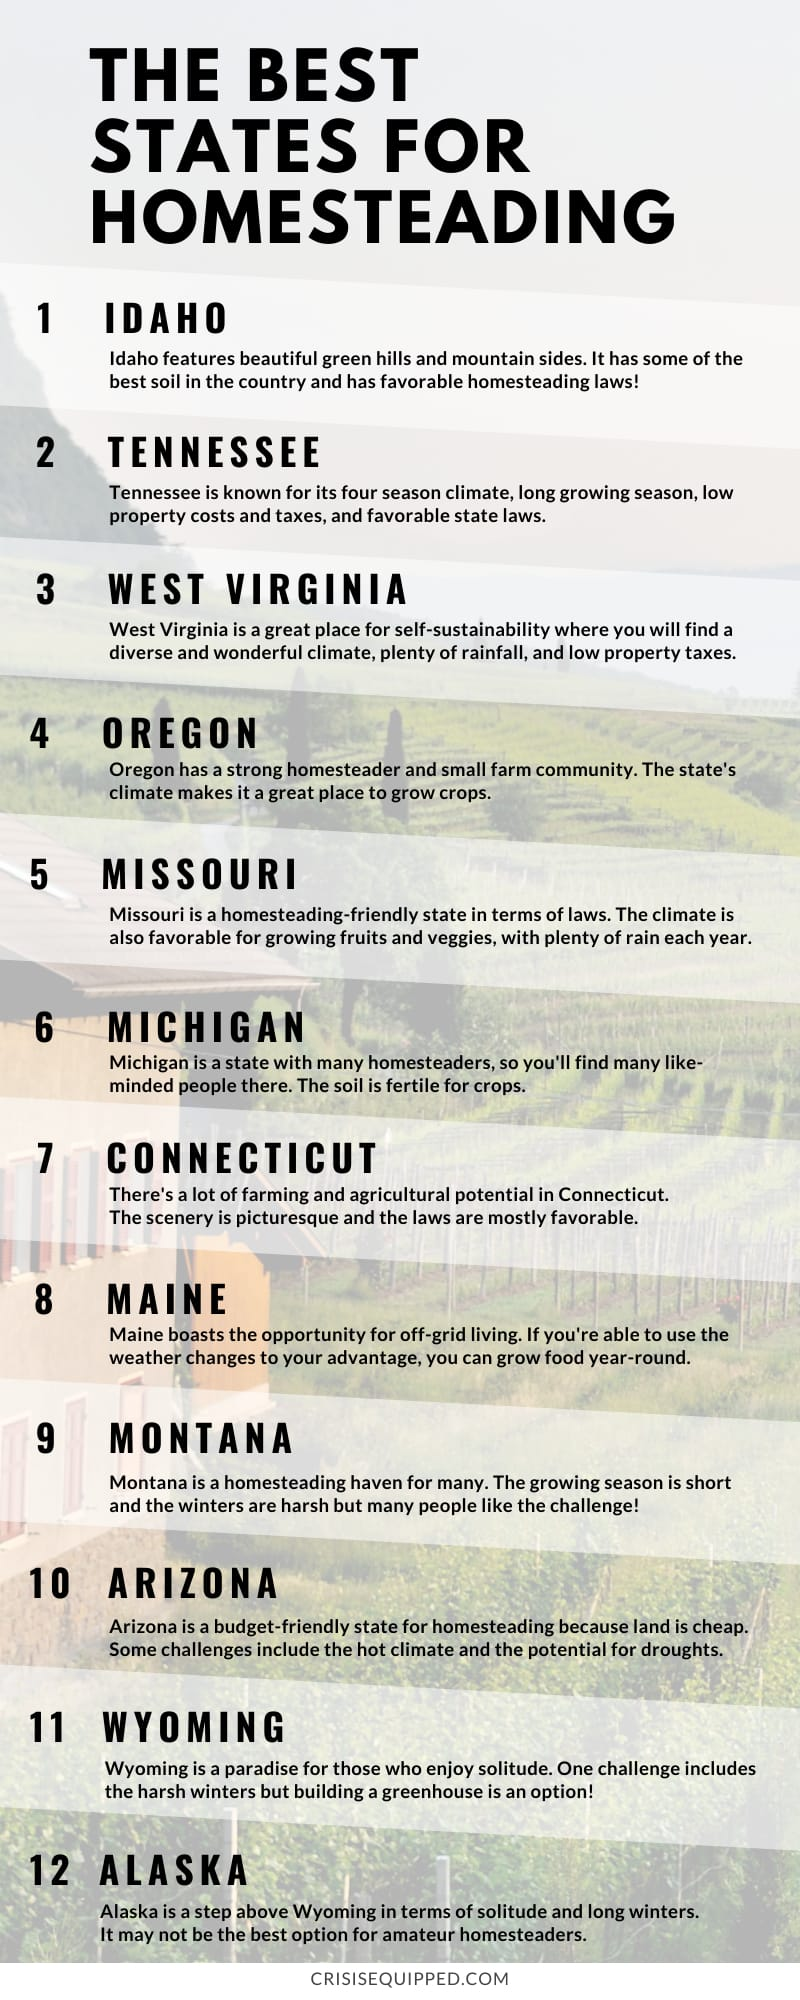 Best states for homesteading